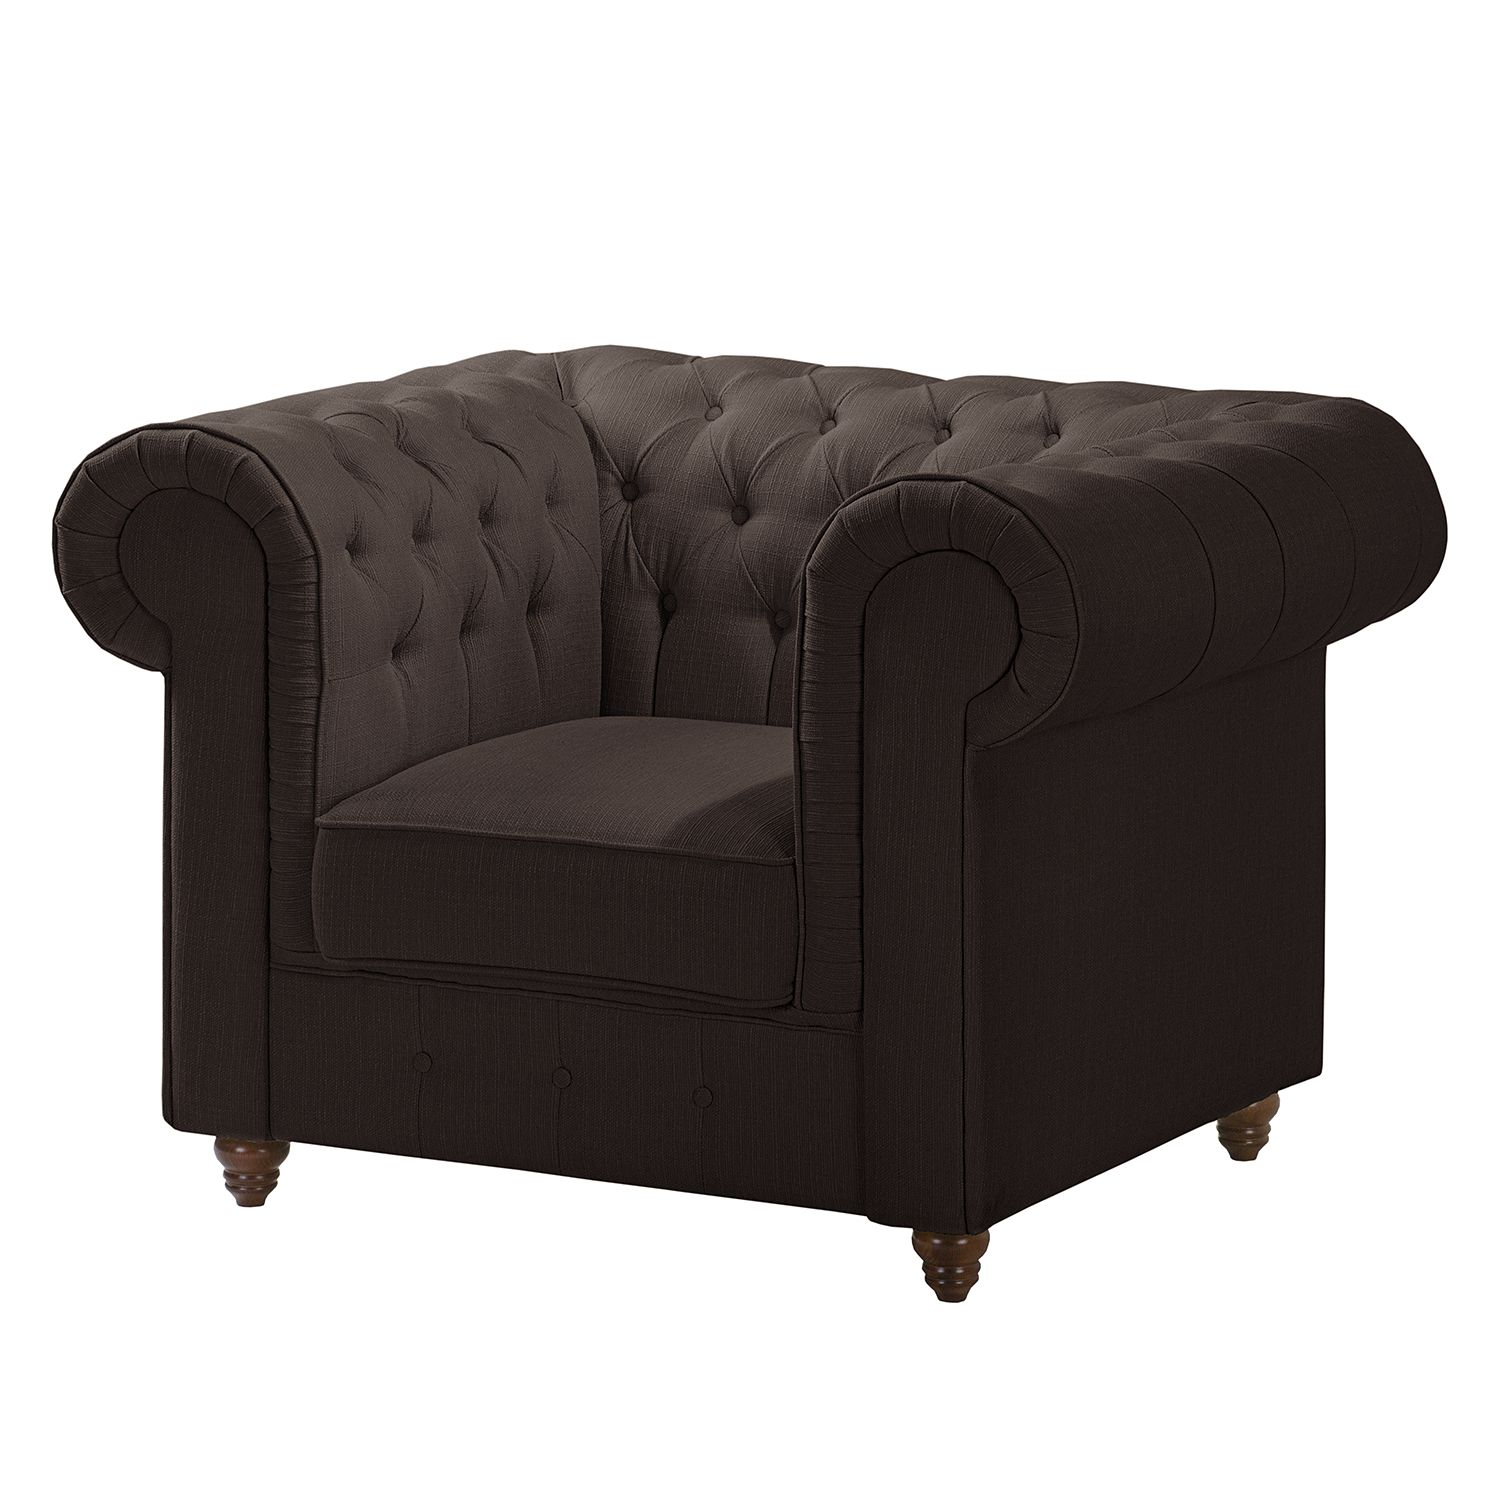 Fauteuil Chesterfield Pintano - Tissu - Expresso, Maison Belfort